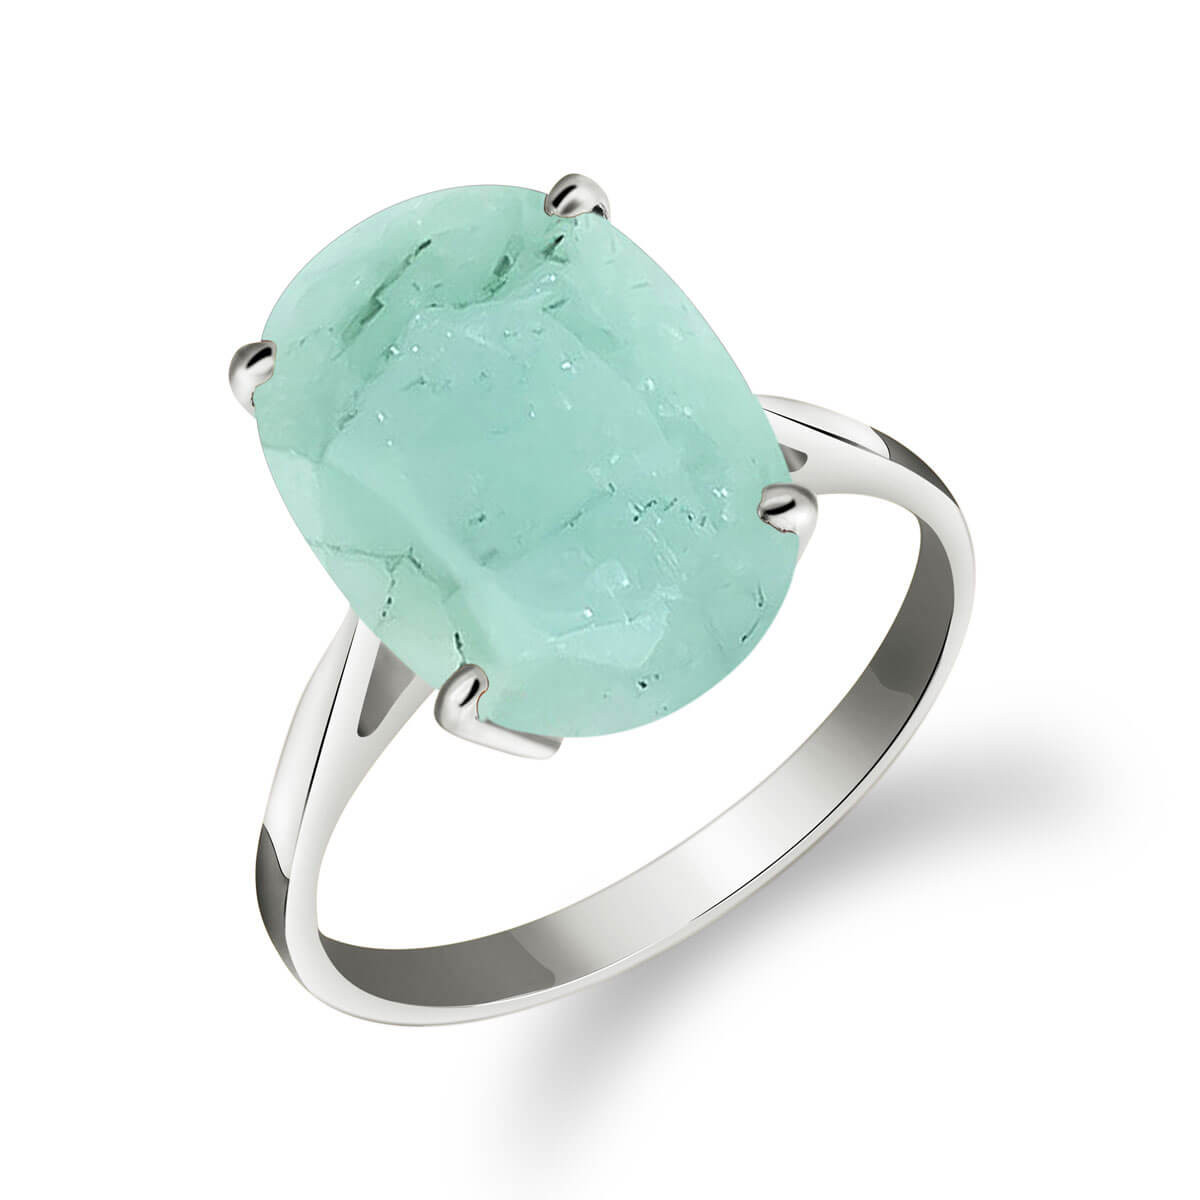 Emerald Valiant Ring 6.5 ct in 9ct White Gold